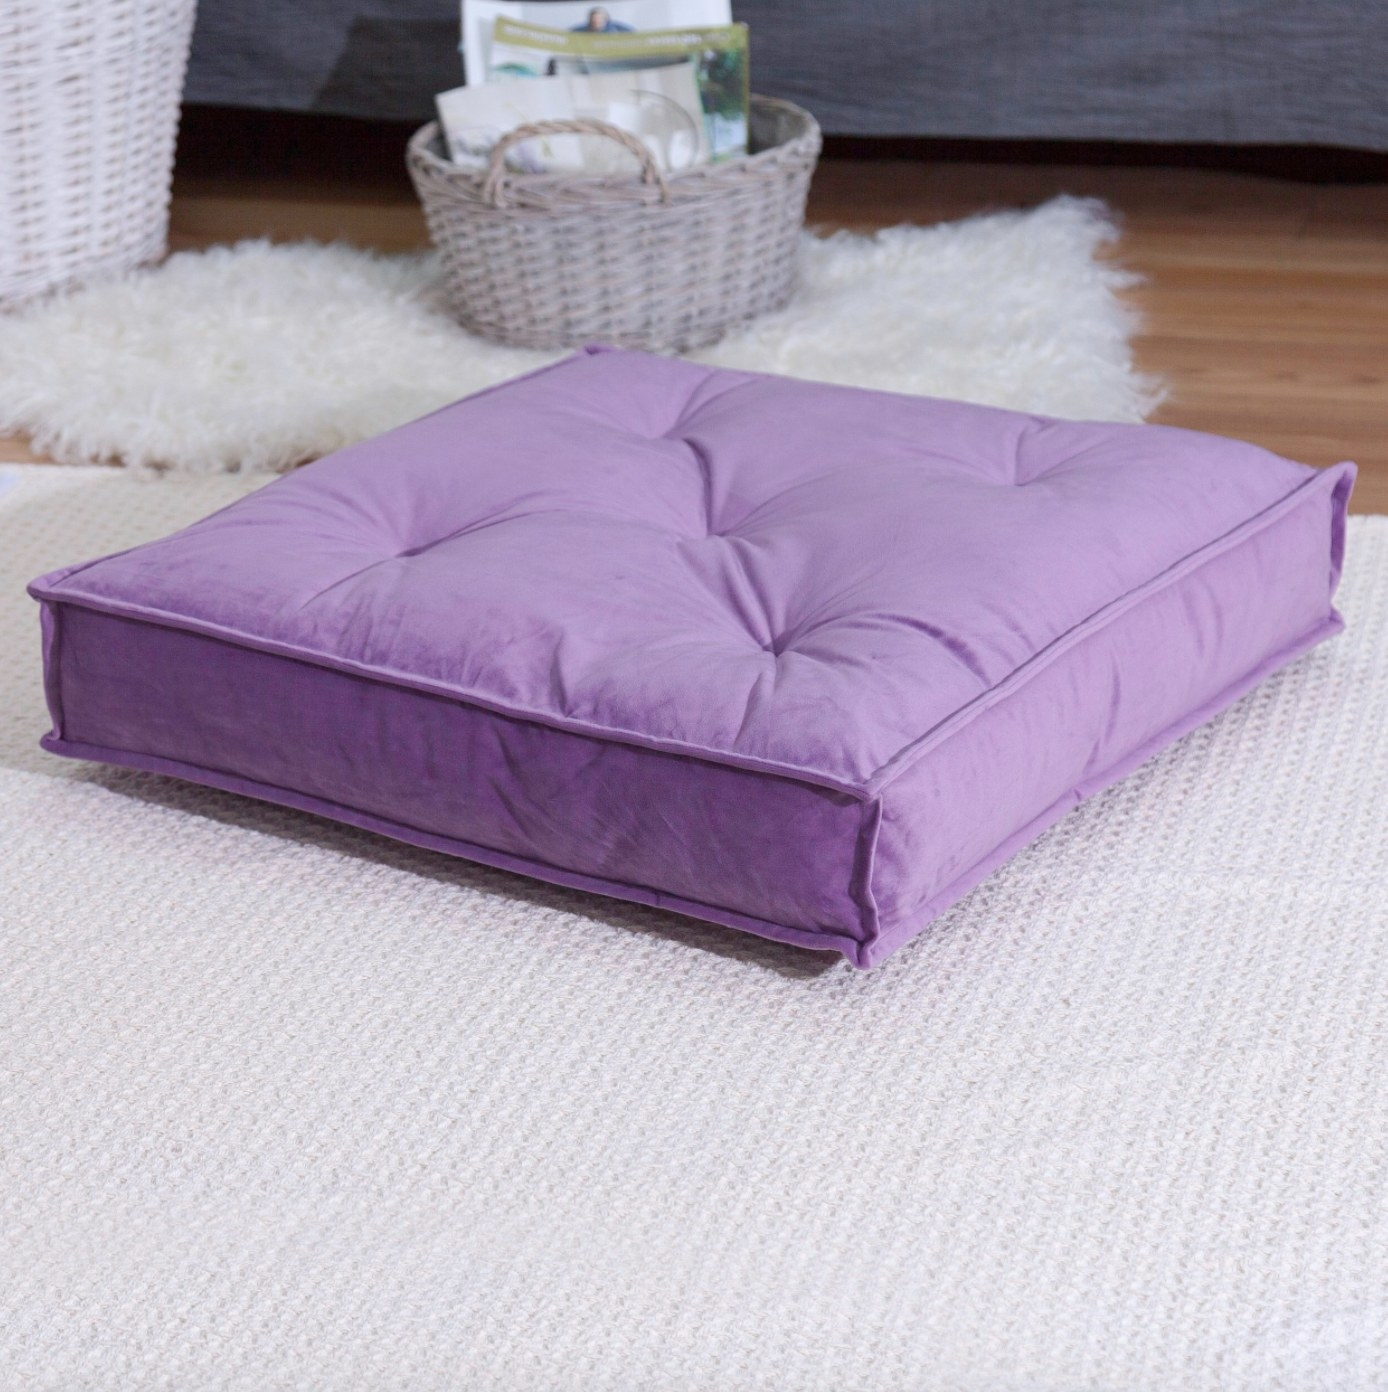 The square cushion in purple